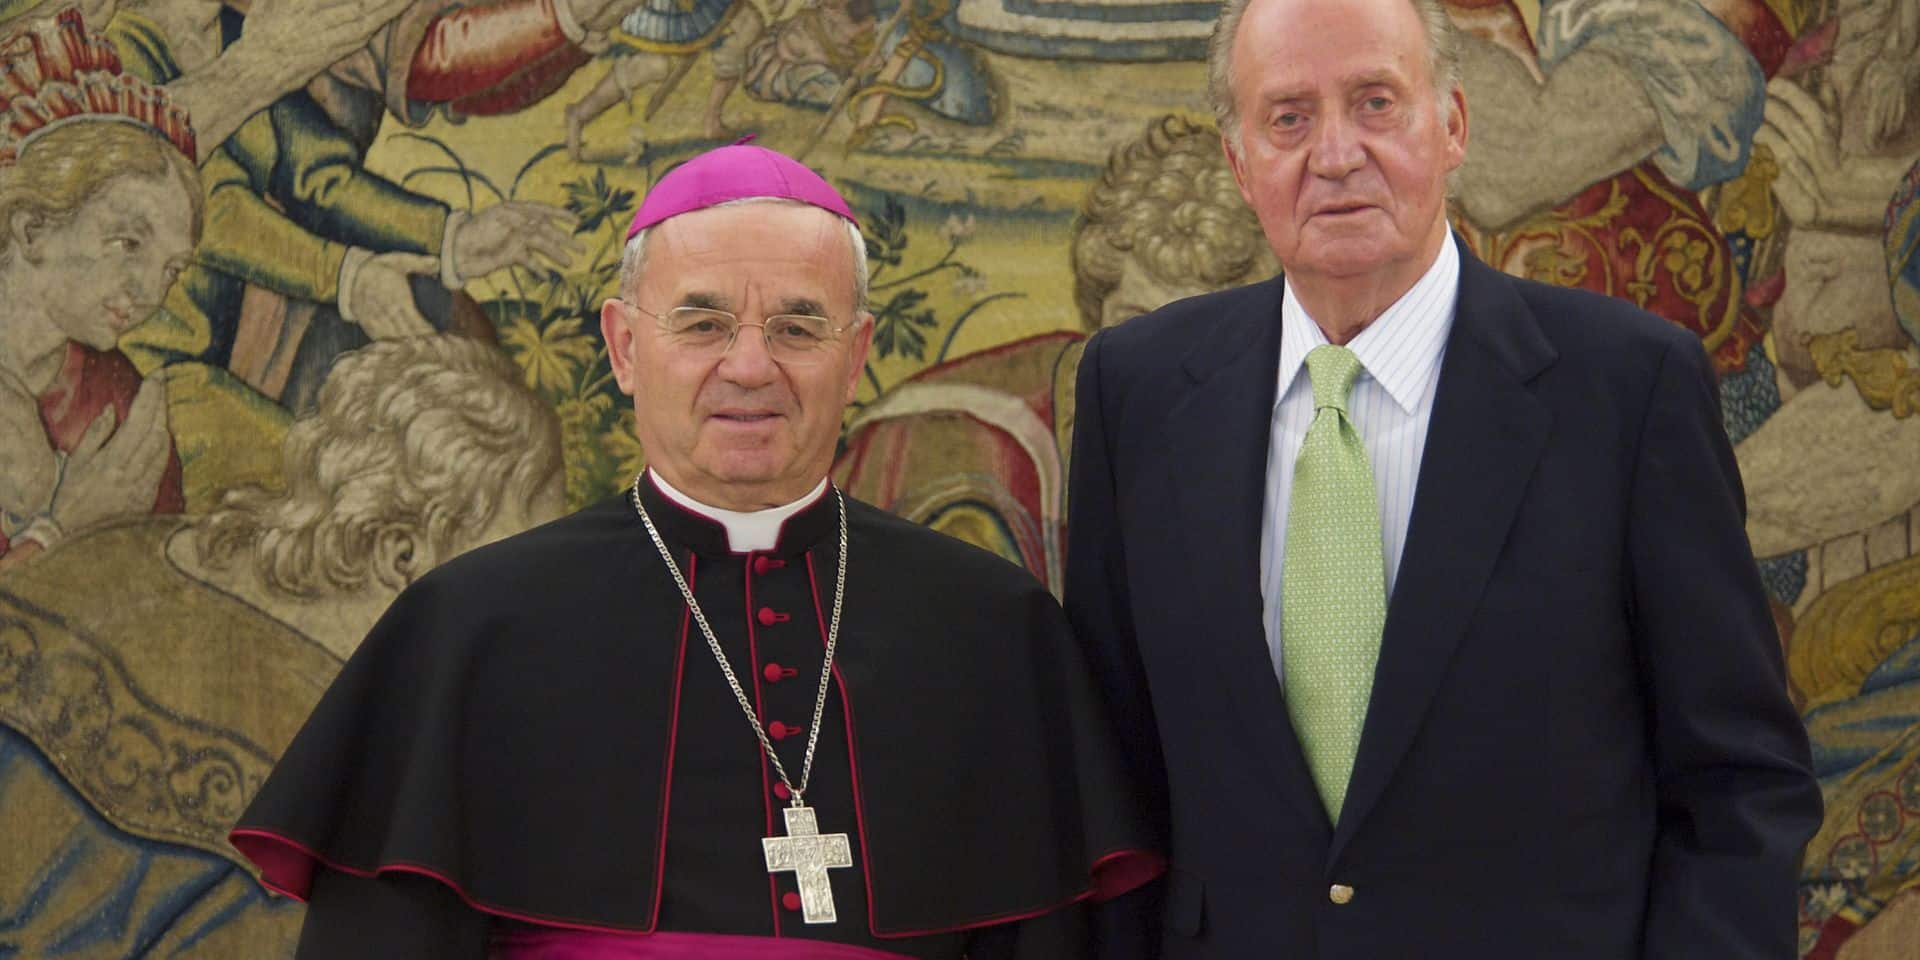 22-07-2011 Madrid King Juan Carlos attended an audience with Archbishop Renzo Fratini, Apostolic Nuncio of the Holy Sede in Spain at Zarzuela Palace in Madrid. No Spain (c) PPE/Thorton PPE-Agency/Edwin Veloo www.ppe-agency.com Anemonenweg 52 2241 XM Wassenaar M. 06-43497725 F 084-7384869 If you have any questions please call or e-mail us with your inquiries Reporters / PPE